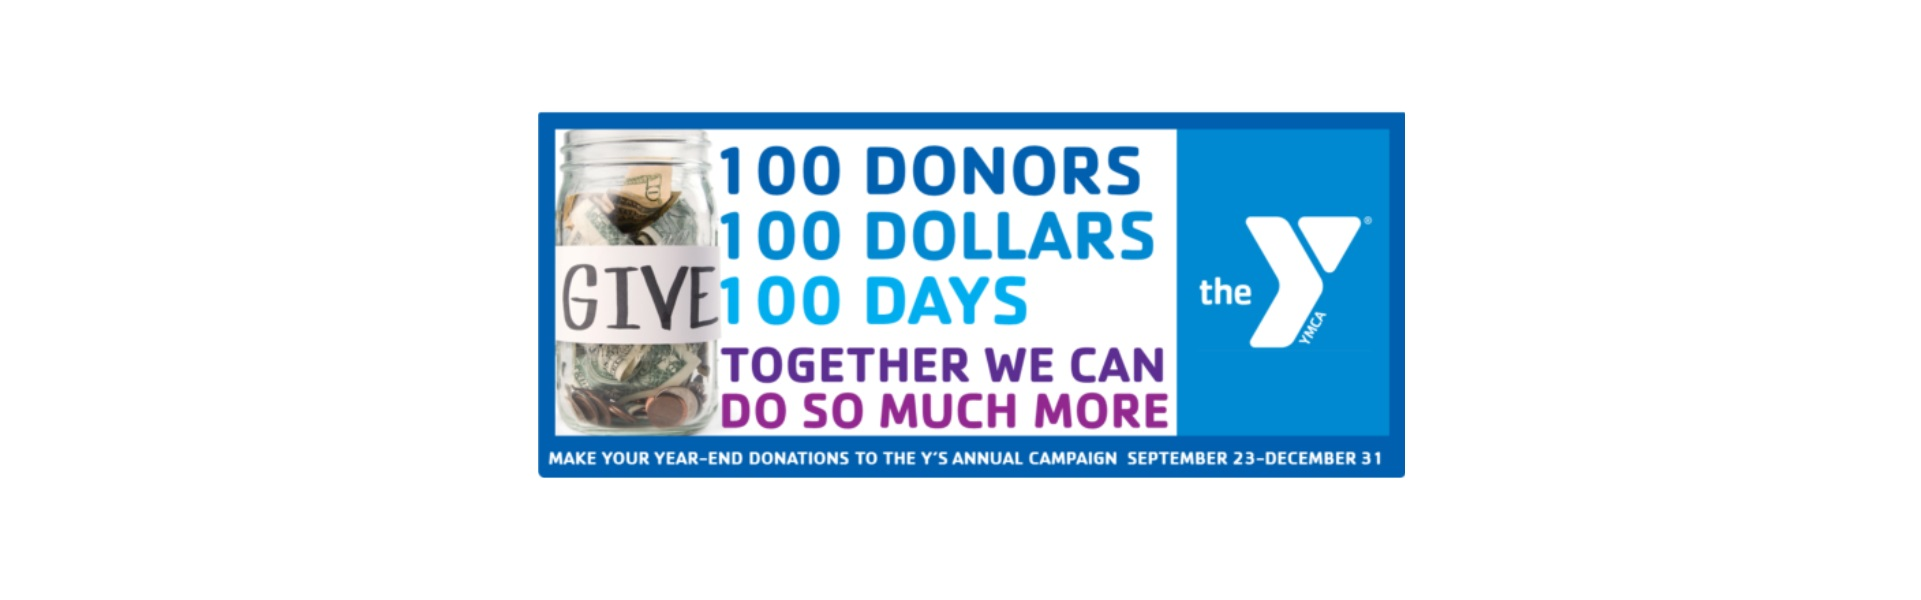 100 Donors